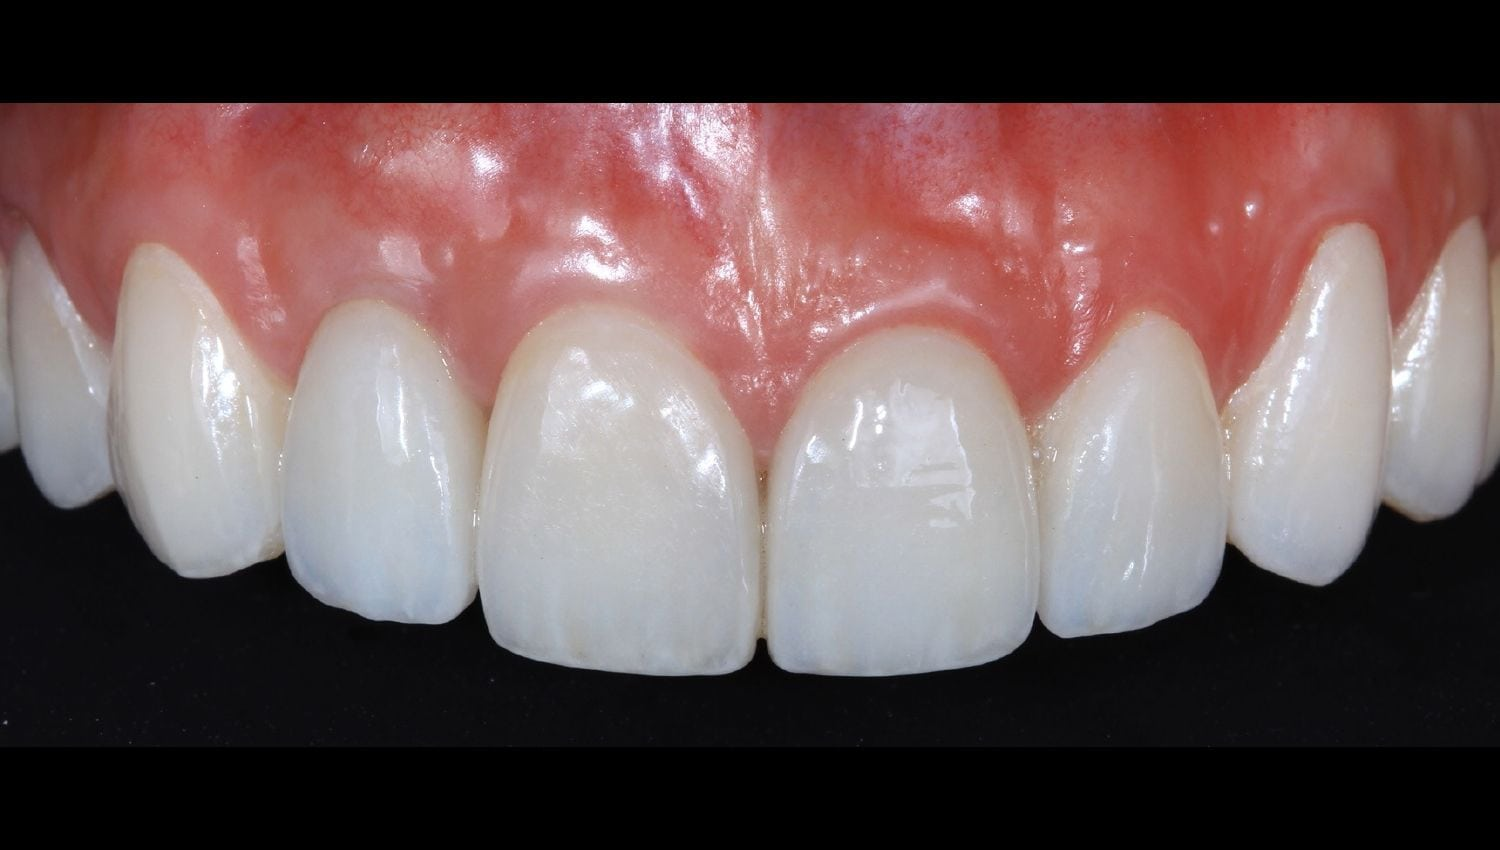 Dental Implants before and after photos - broken front tooth